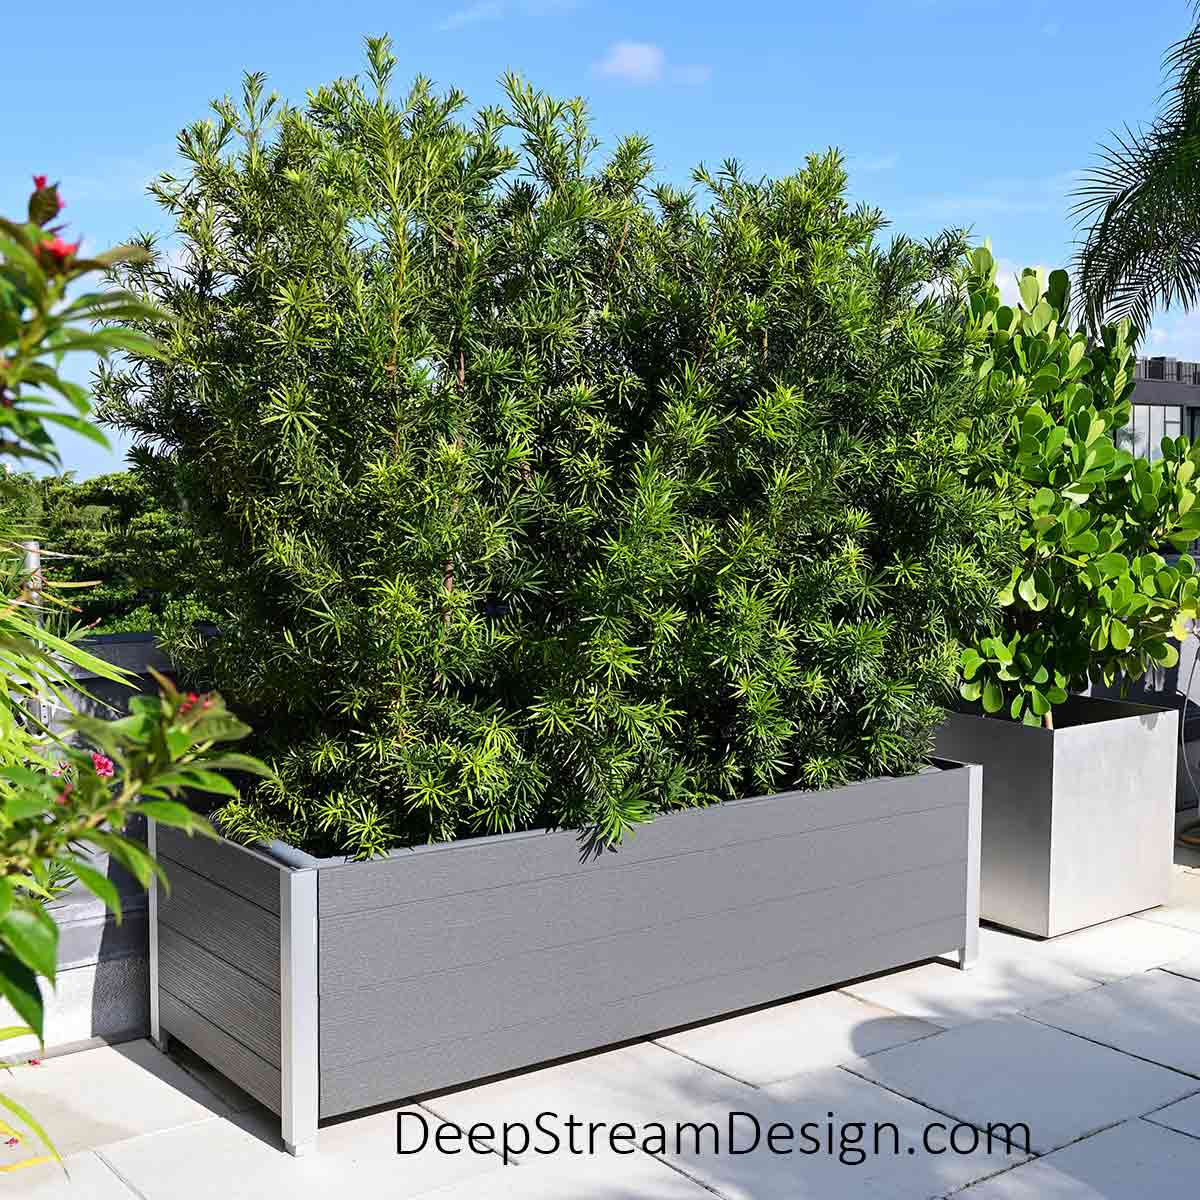 On a penthouse rooftop deck, a large dark gray Mariner recycled plastic lumber planter containing tall podocarpus trimmed to form a screen wall 8 feet high. Podocarpus can grow up to 40 feet tall. DeepStream's complete 3-part planter system makes it easy to successfully grow natural conifer or evergreen privacy screens that are easy to maintain. The square DeepStream natural aluminum planter for trees next to it is growing a sea grape tree which, while considerably slower growing, can be pruned and trained in spectacular shapes to create privacy screens.